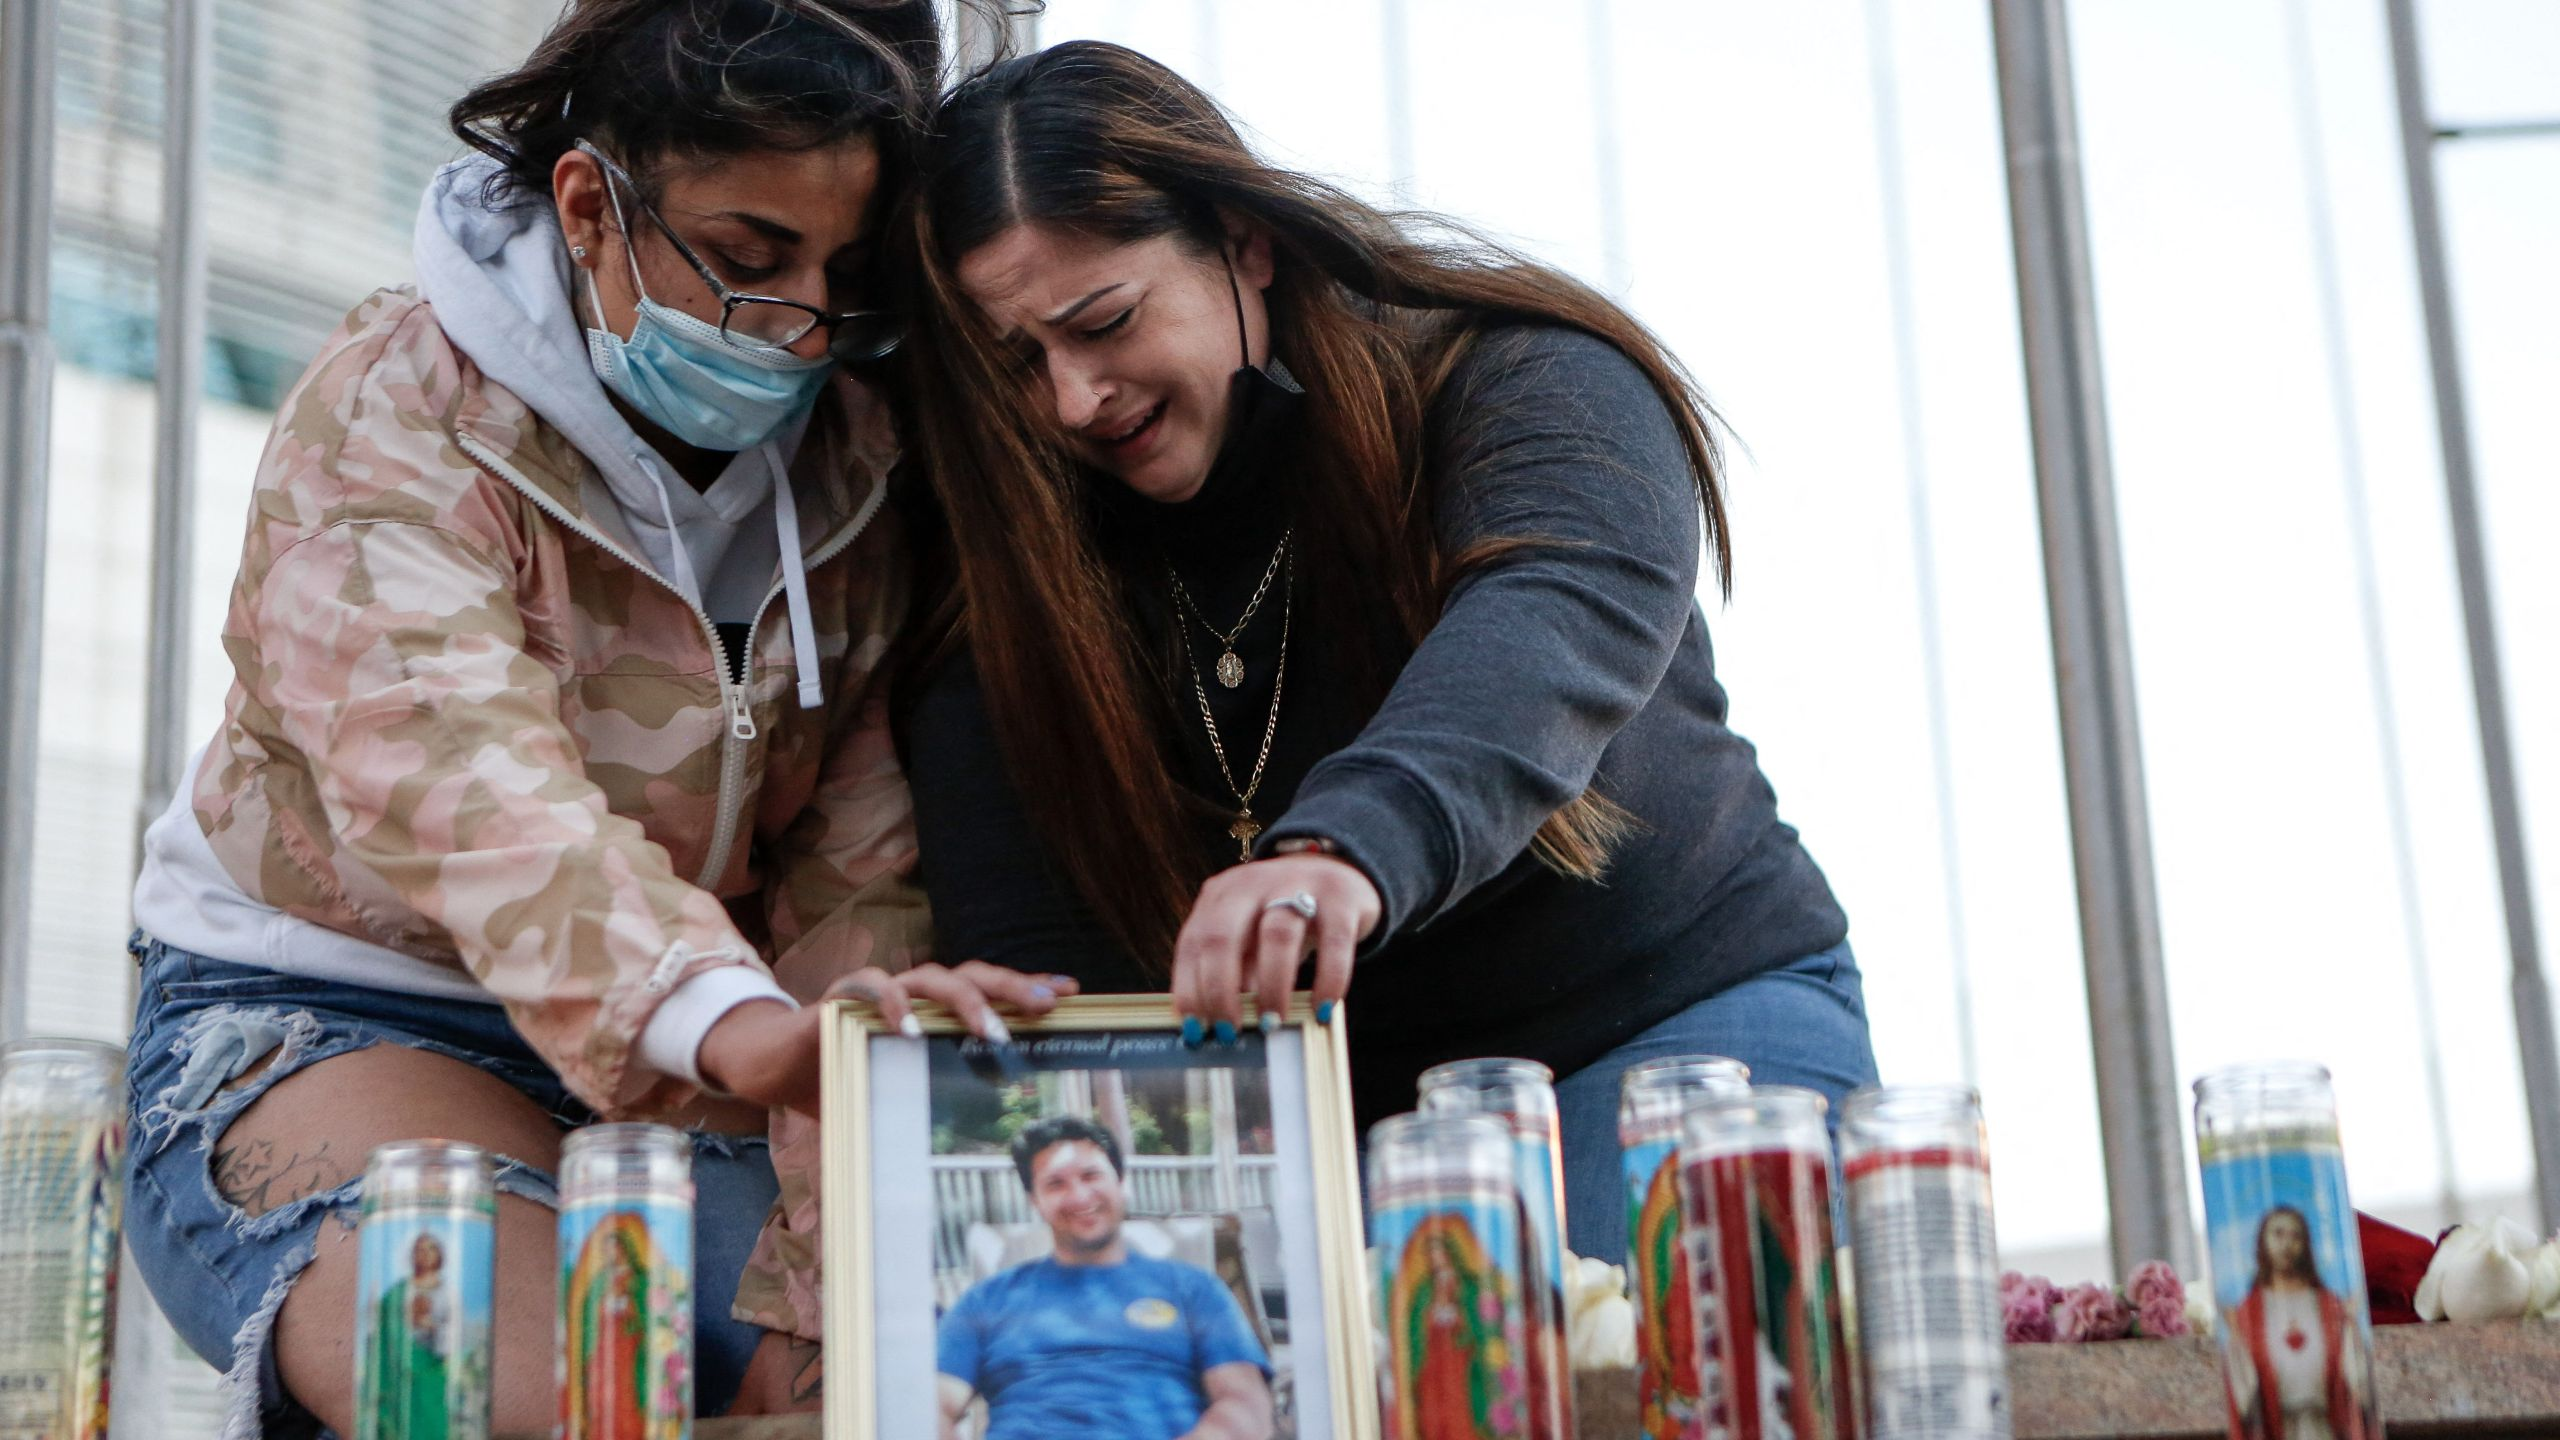 Two women mourn their cousin as they attend a vigil for the victims of a shooting at San Jose City Hall on May 27, 2021. (AMY OSBORNE/AFP via Getty Images)